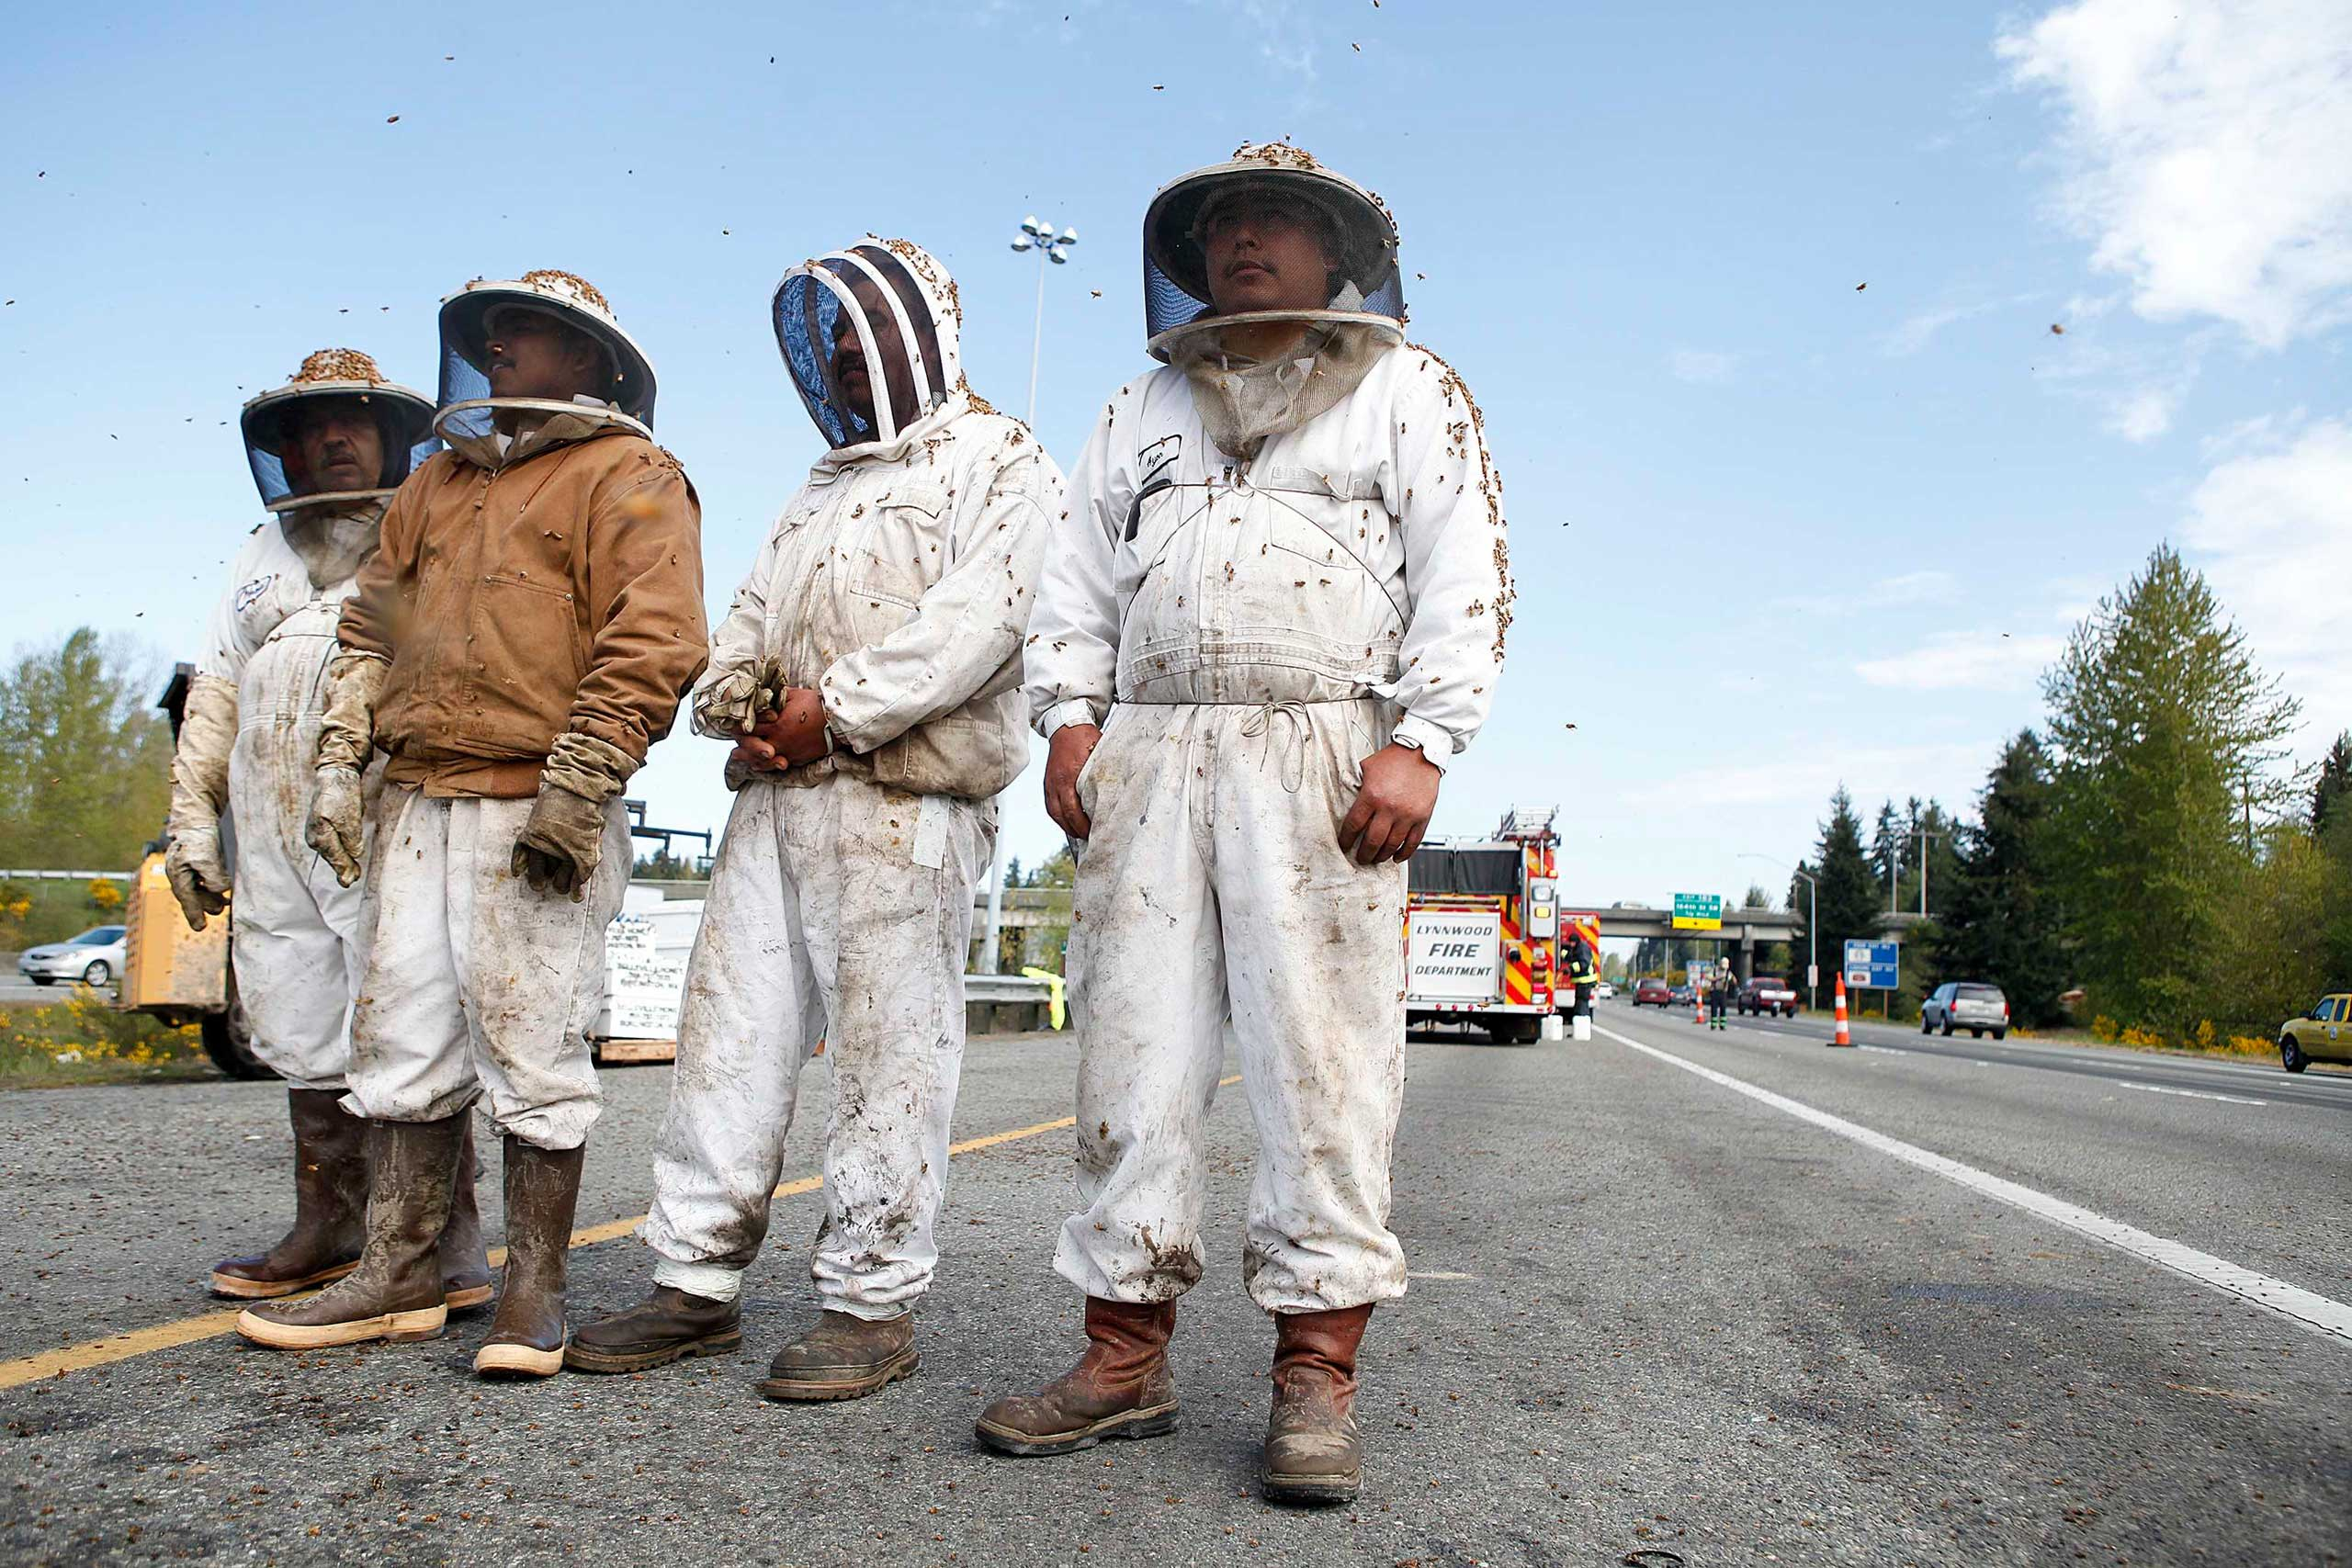 Beekeepers wait to start clearing out the scene of semi-trailer truck that overturned with a cargo of bees on a highway in Lynnwood, Wash., on Apr. 17, 2015.